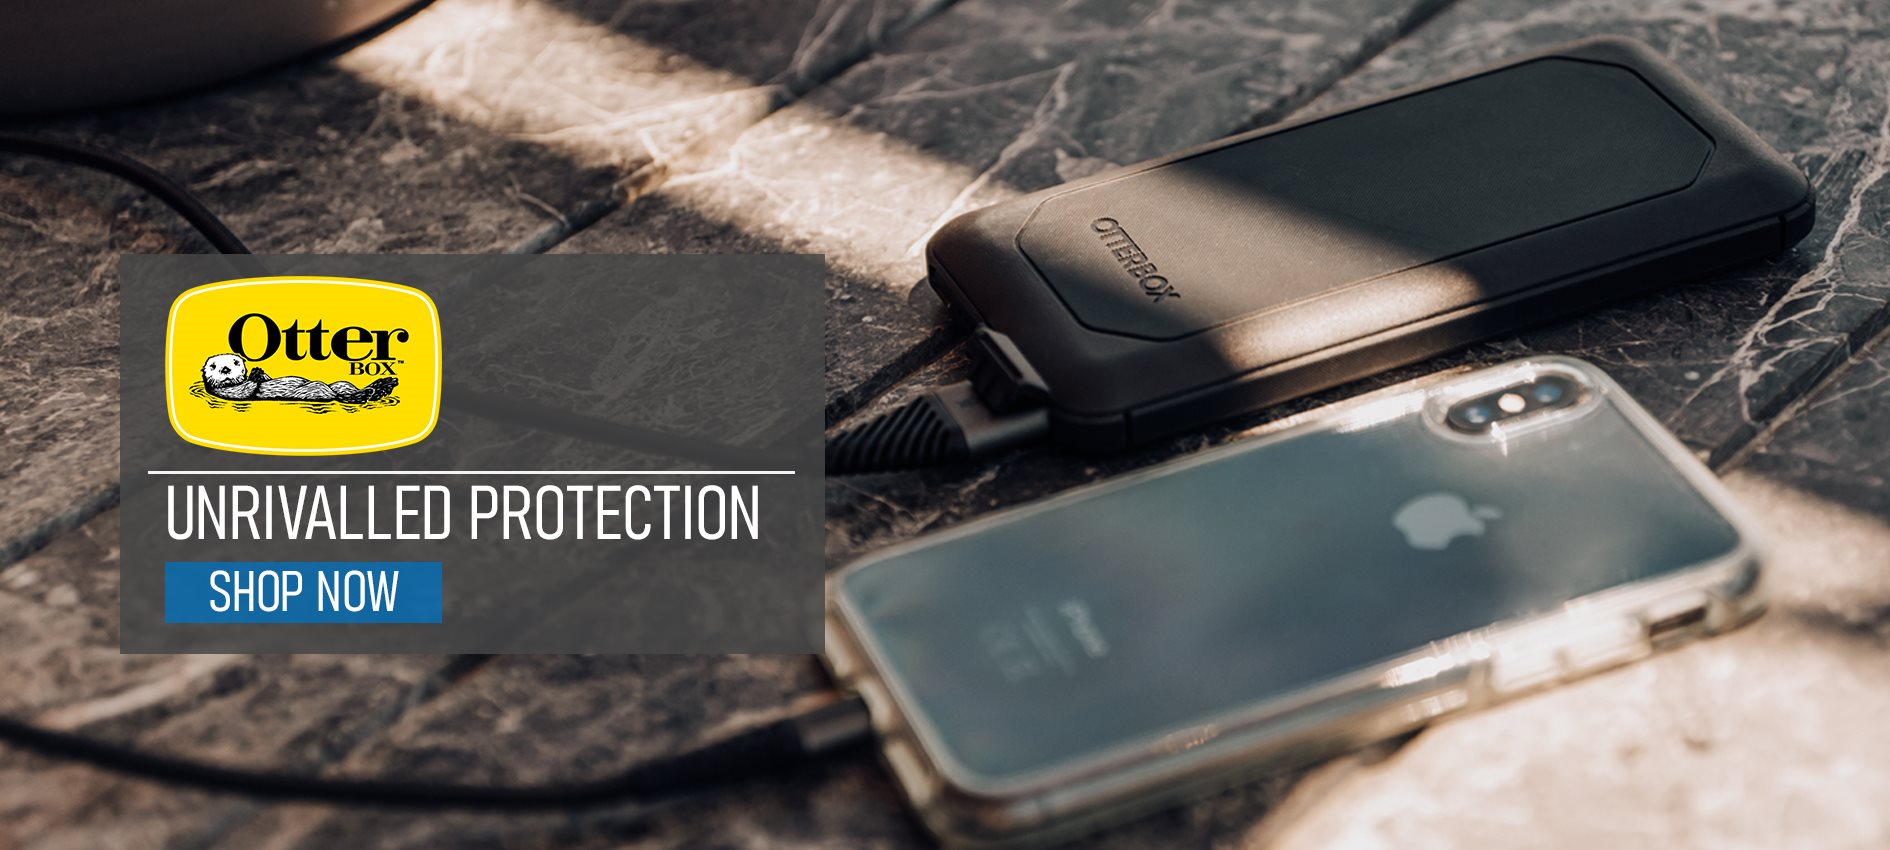 OtterBox Phone Cases with Unrivaled Protection